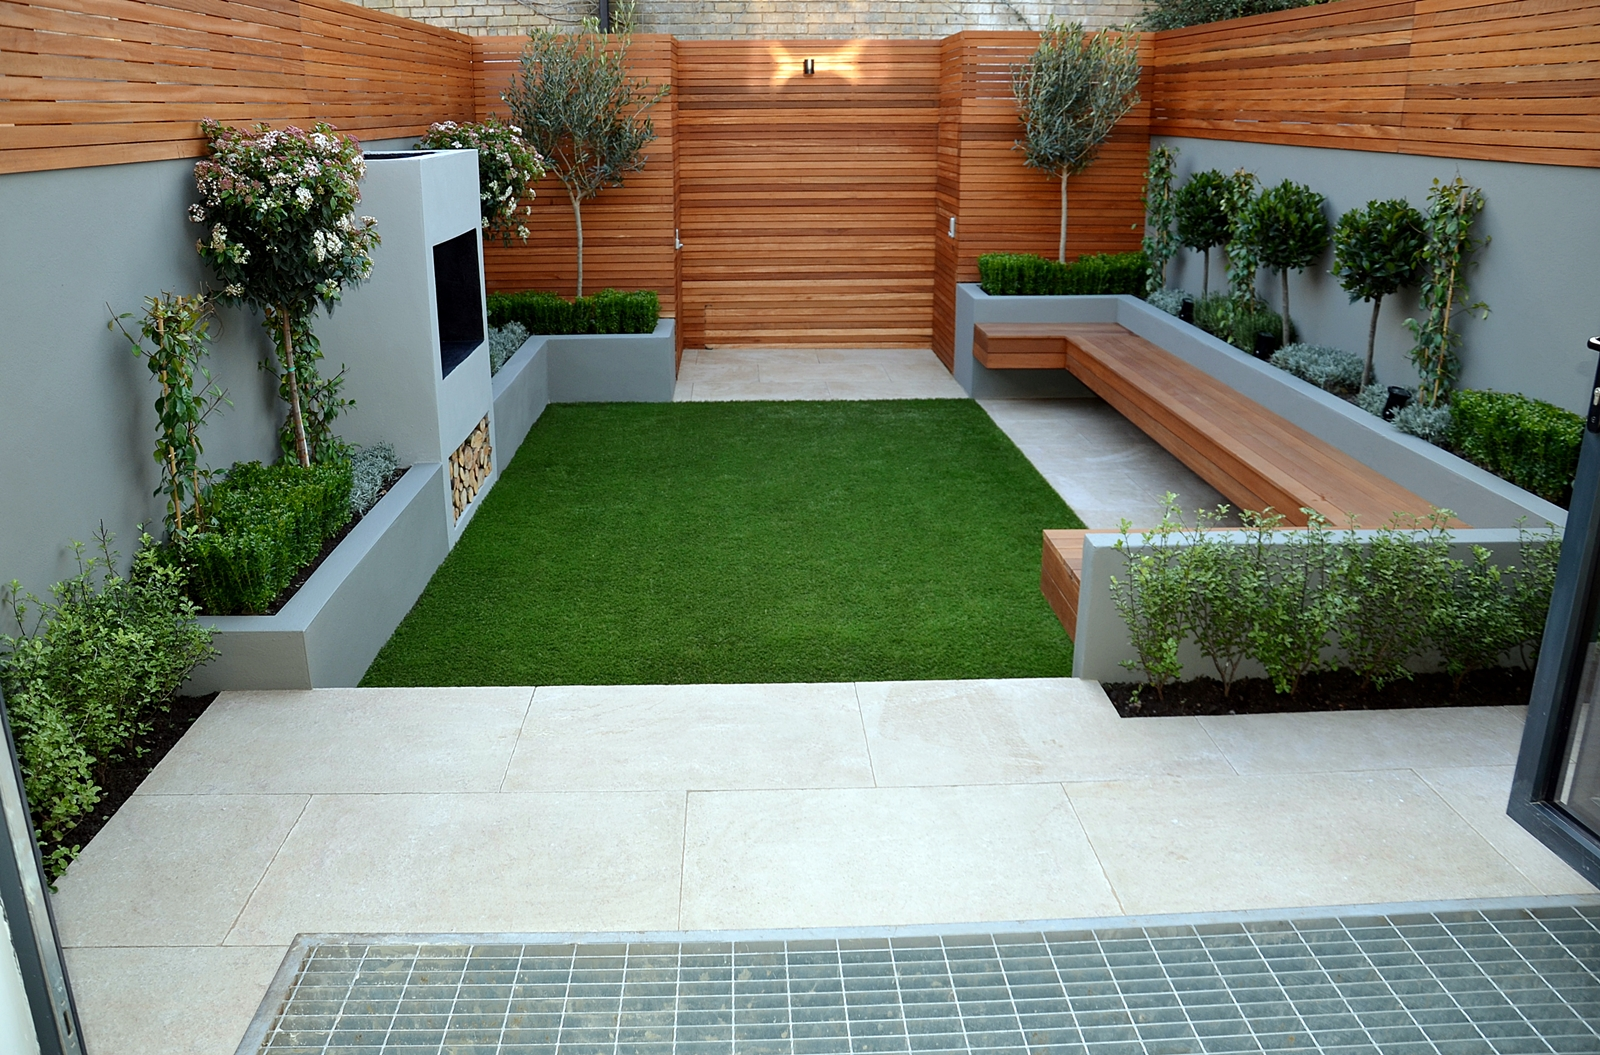 Contemporary modern small garden designer anewgarden for Images of garden designs